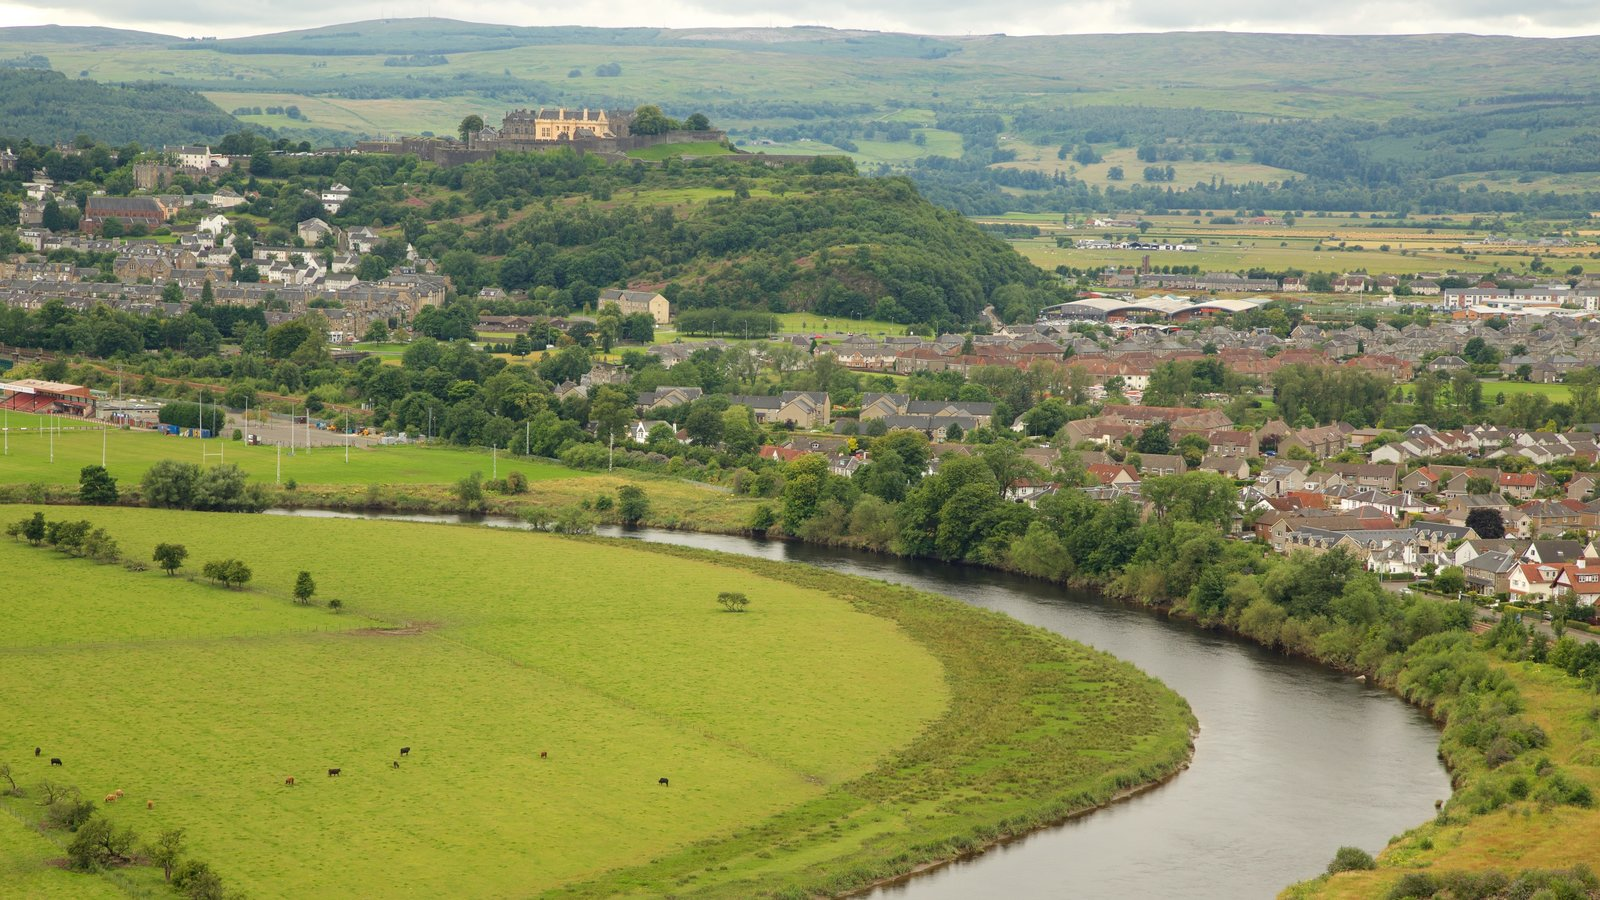 Stirling which includes a river or creek, landscape views and a small town or village